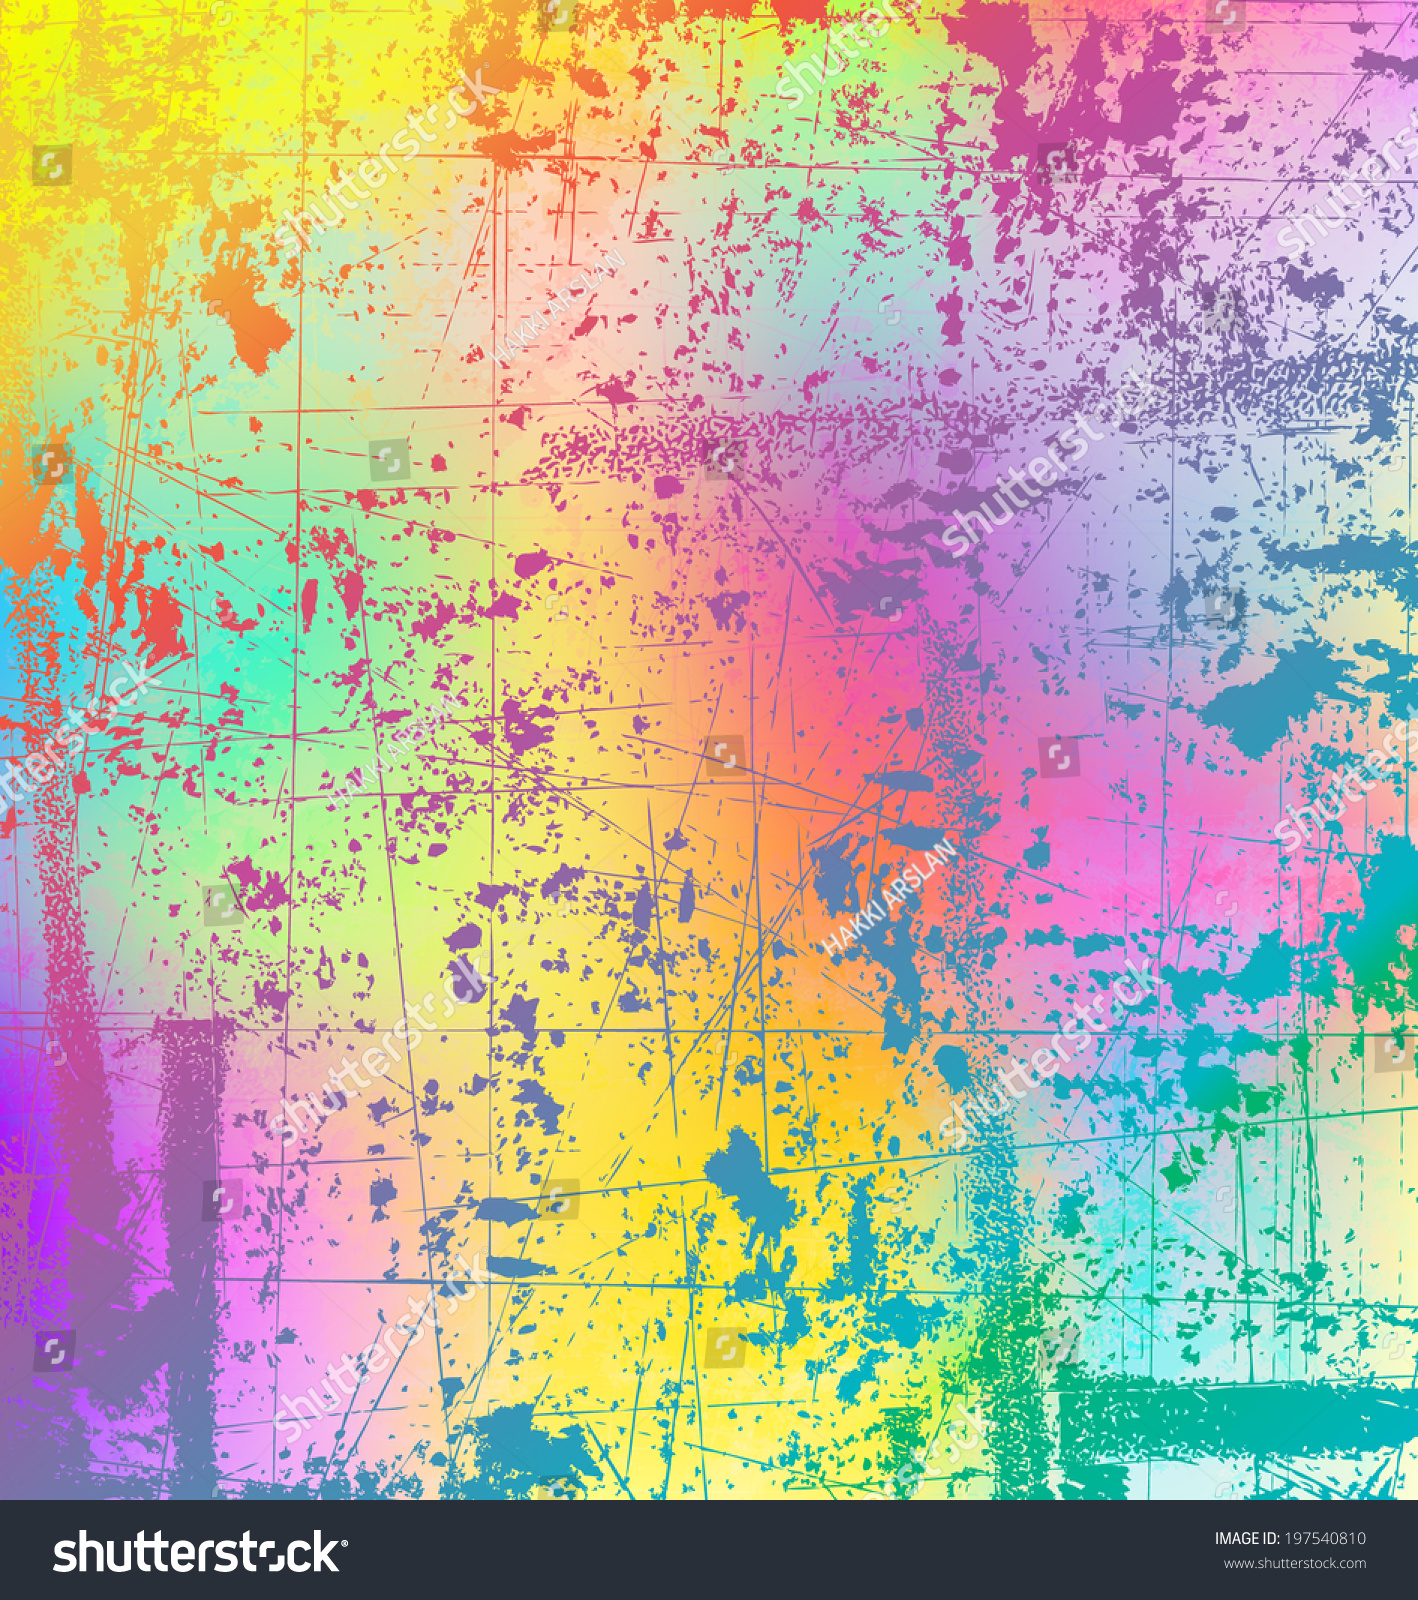 Abstract Grunge Style Color Splash Background Stock Vector (Royalty ...